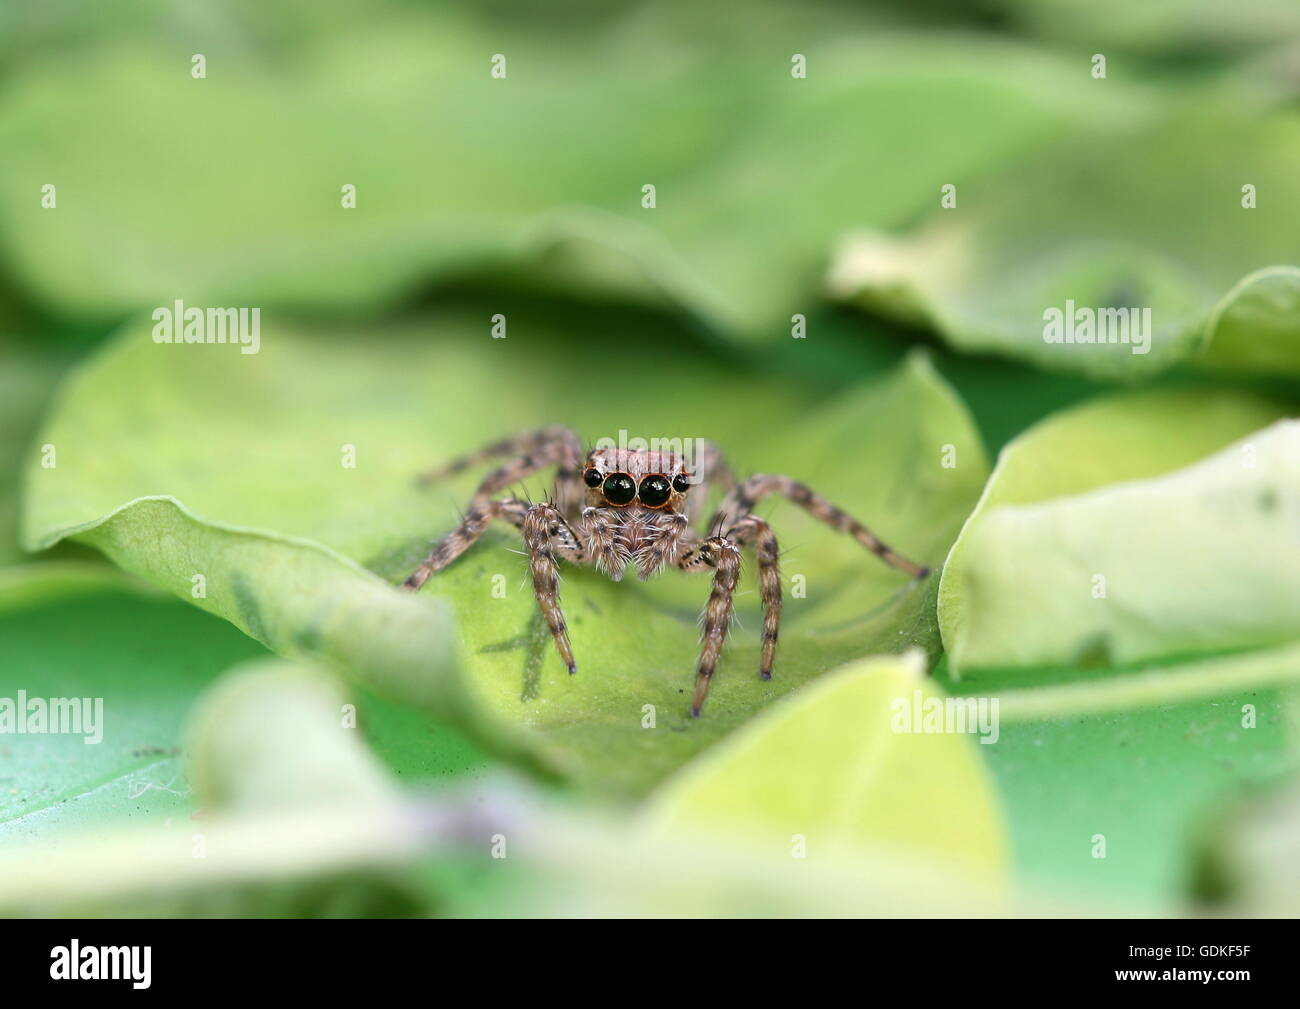 Jumping spider on moringa leaves. - Stock Image